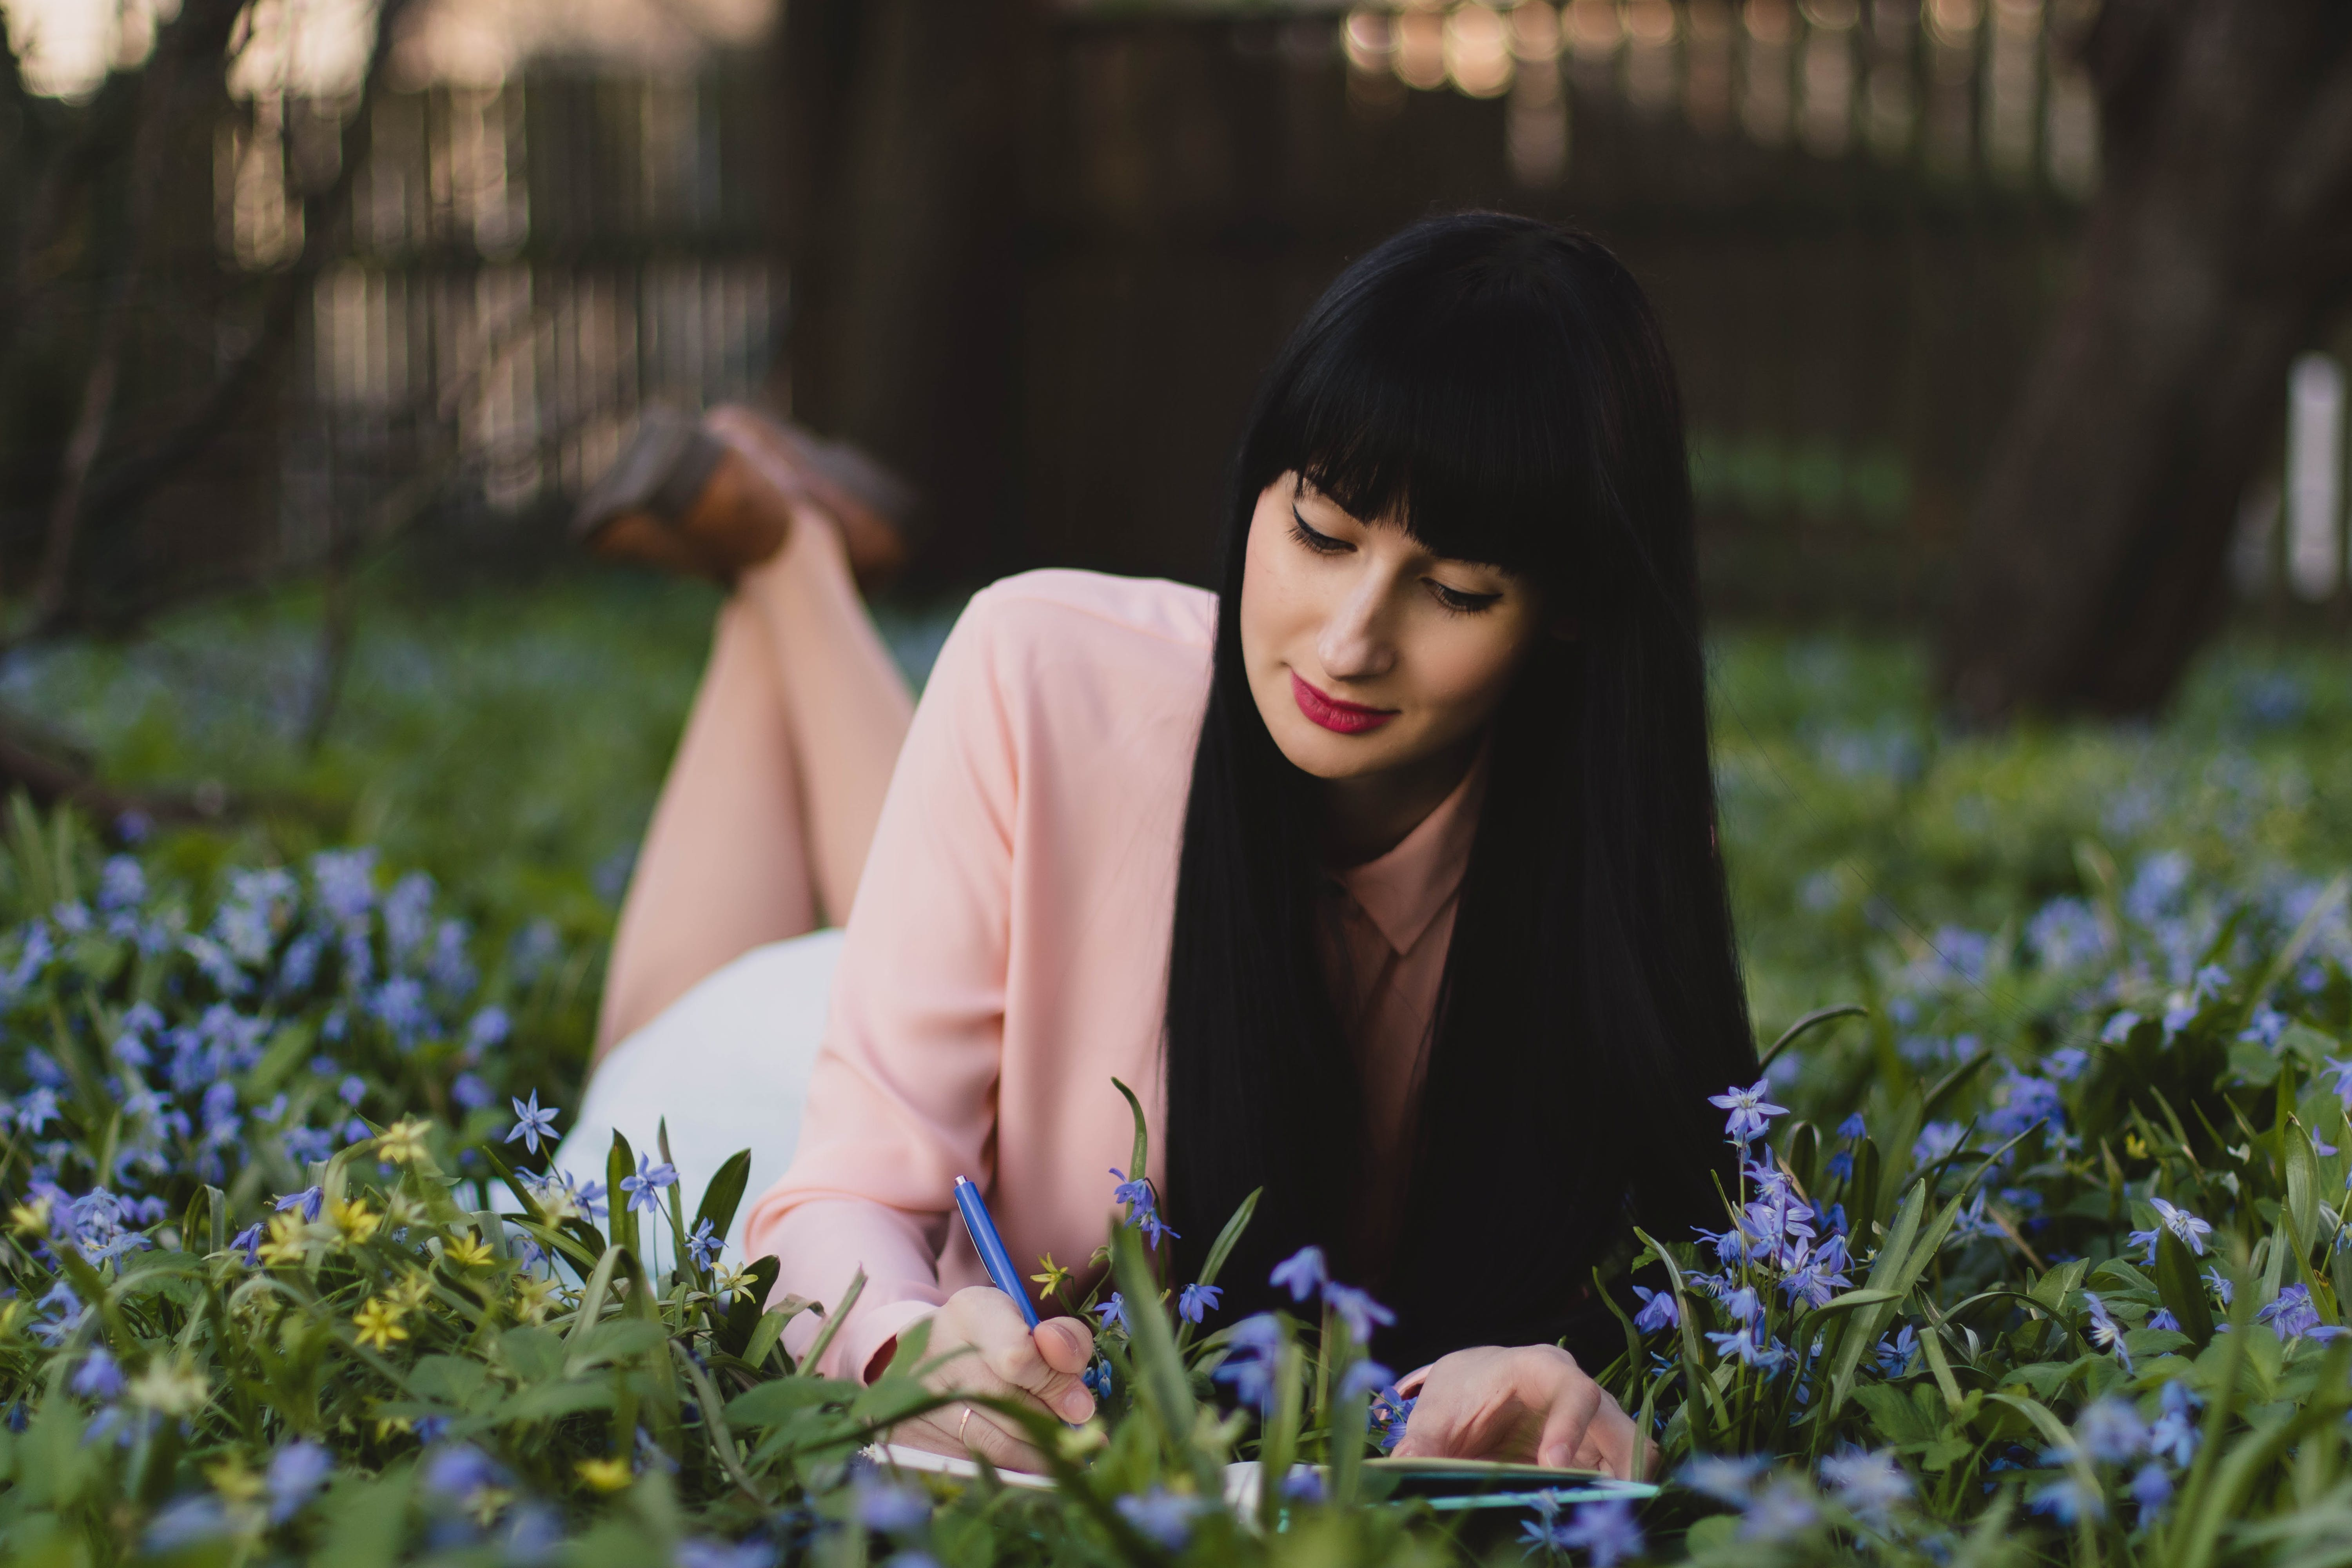 Woman Resting on Green Grass during Daytime